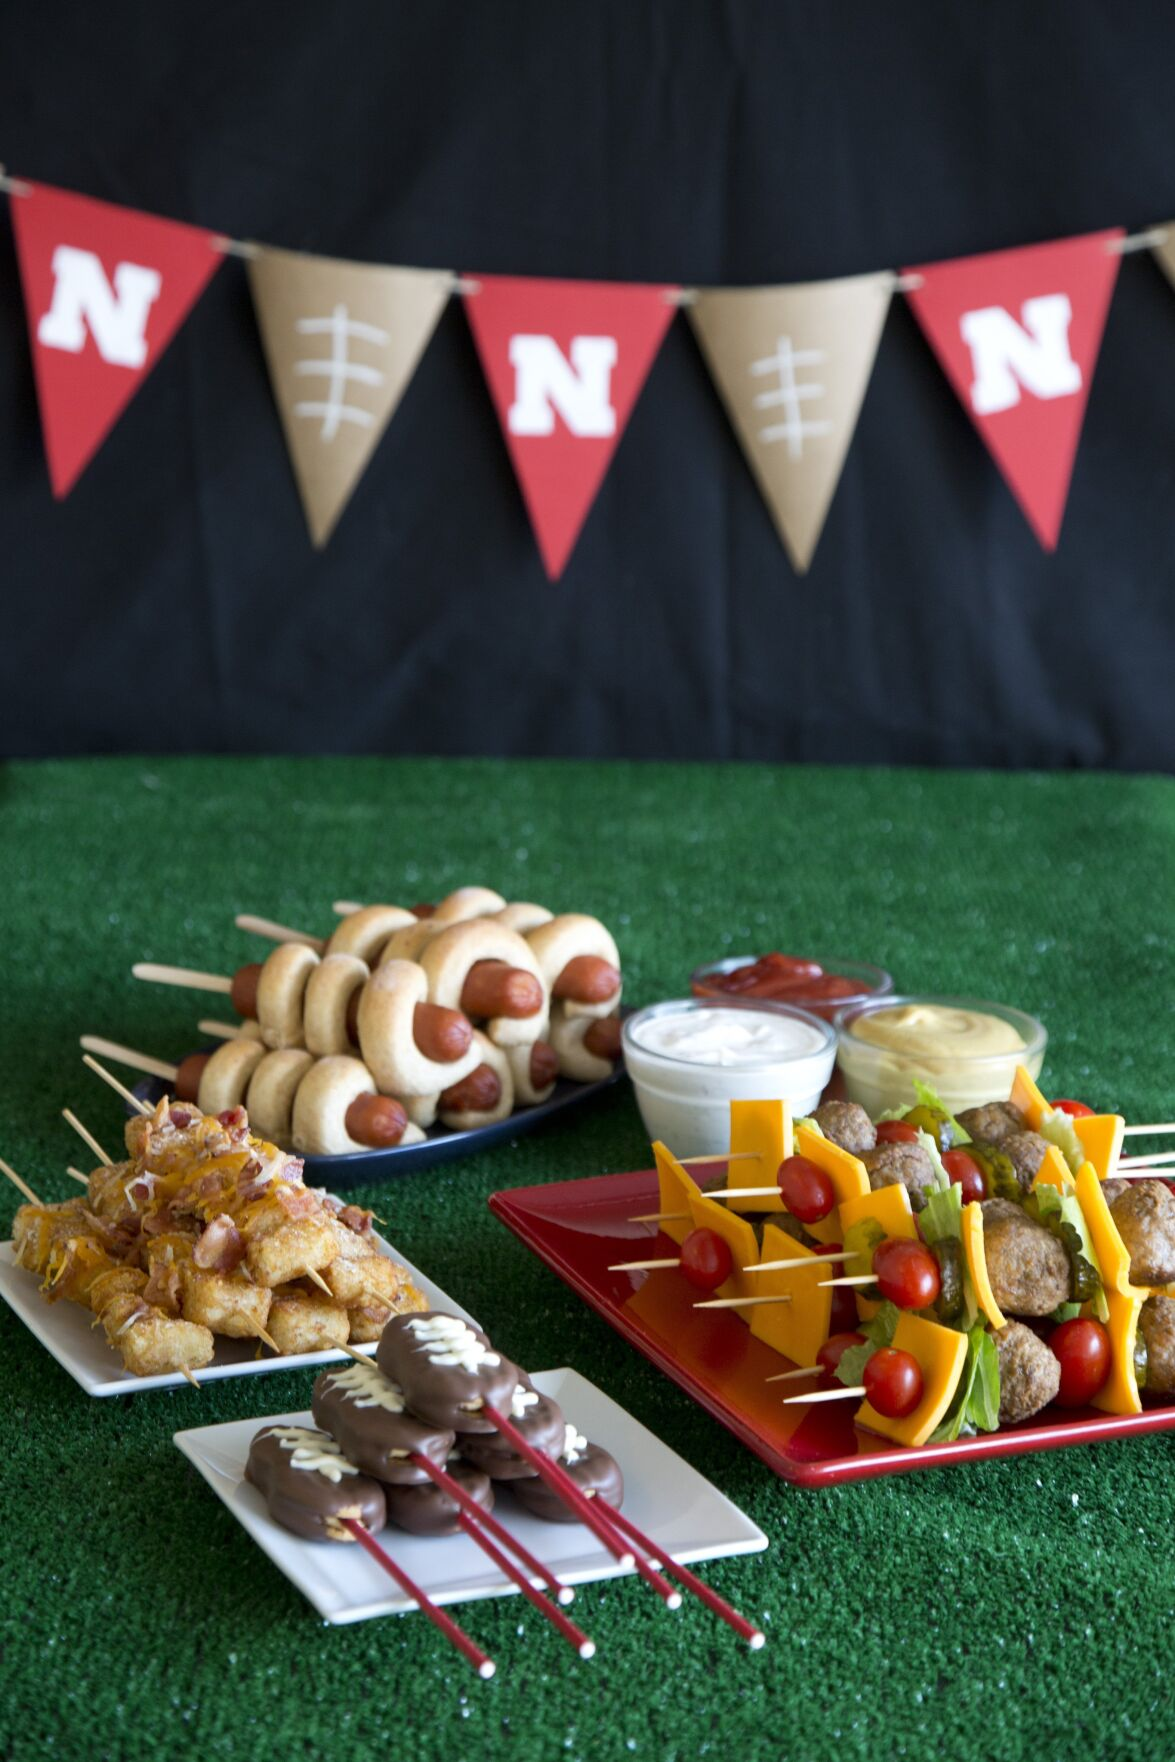 080421-owh-mom-tailgate-p1